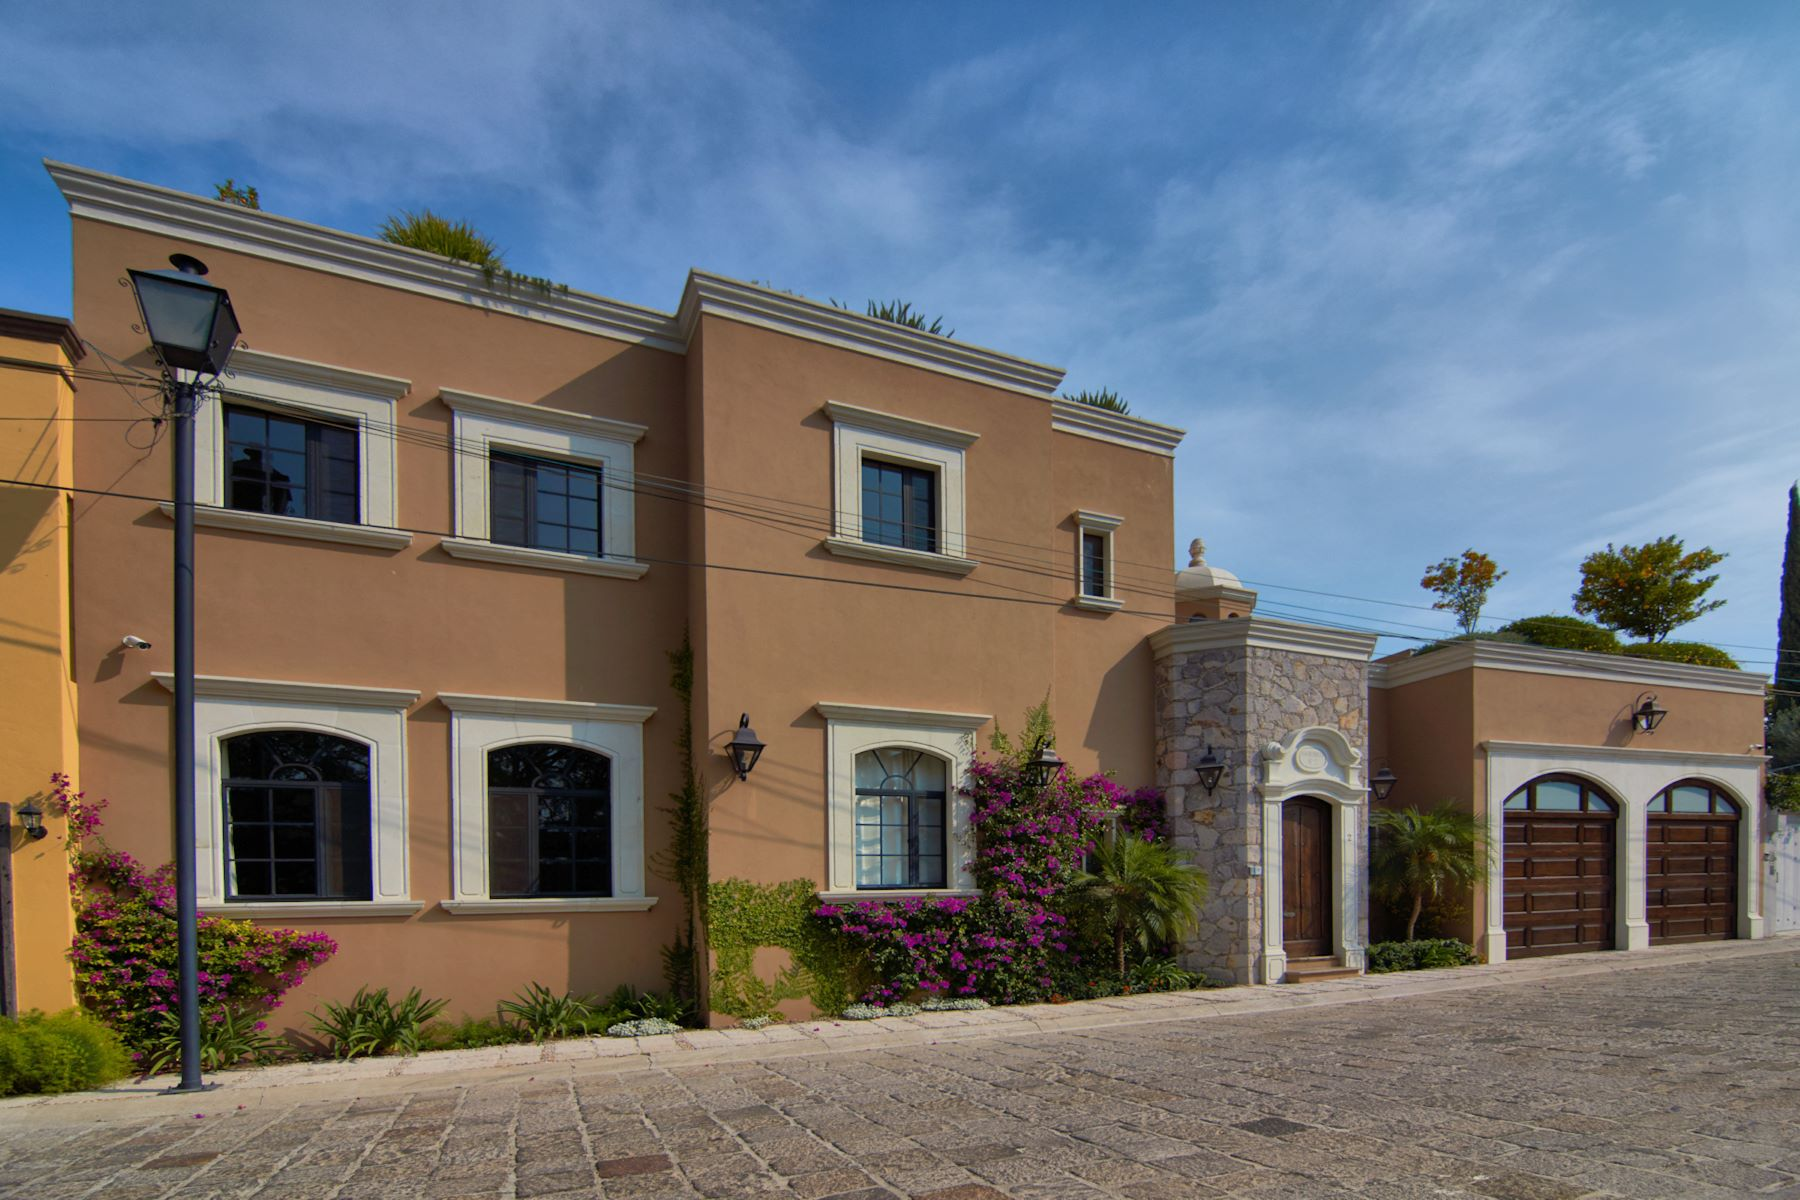 Single Family Home for Sale at Casa Leo Guadiana, San Miguel De Allende, Guanajuato Mexico